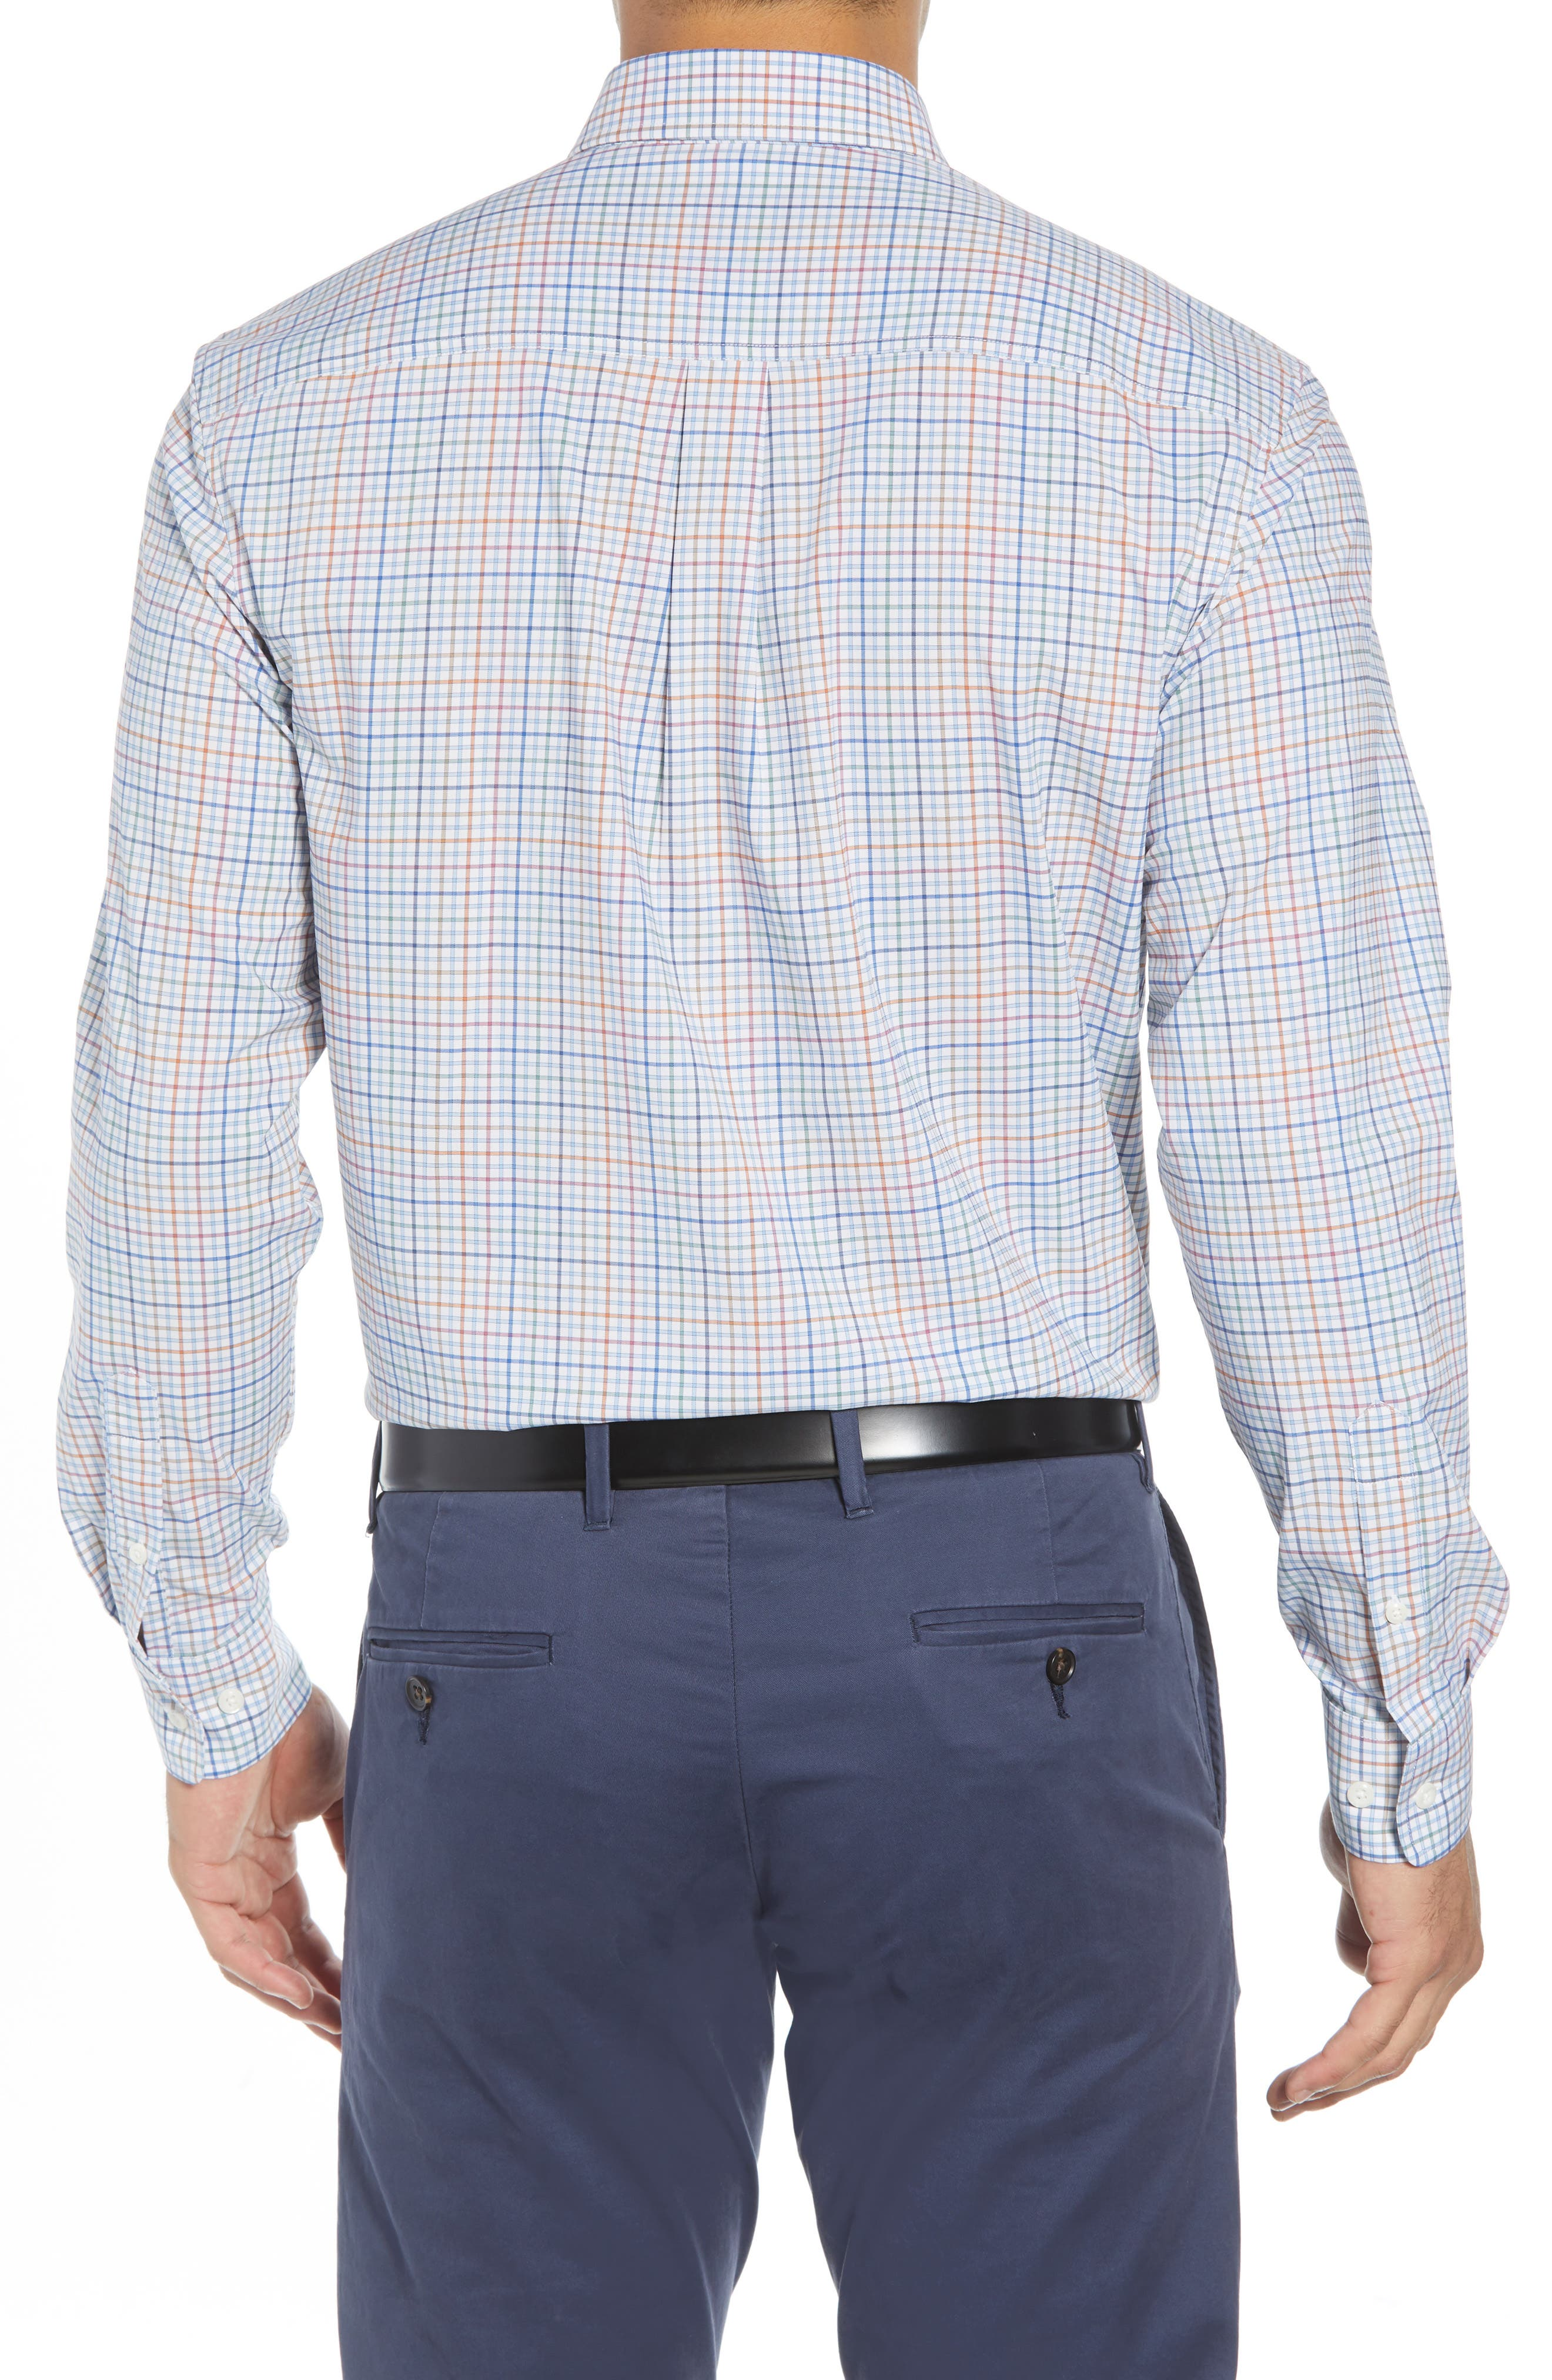 Chester Classic Fit Sport Shirt,                             Alternate thumbnail 3, color,                             GULF BLUE